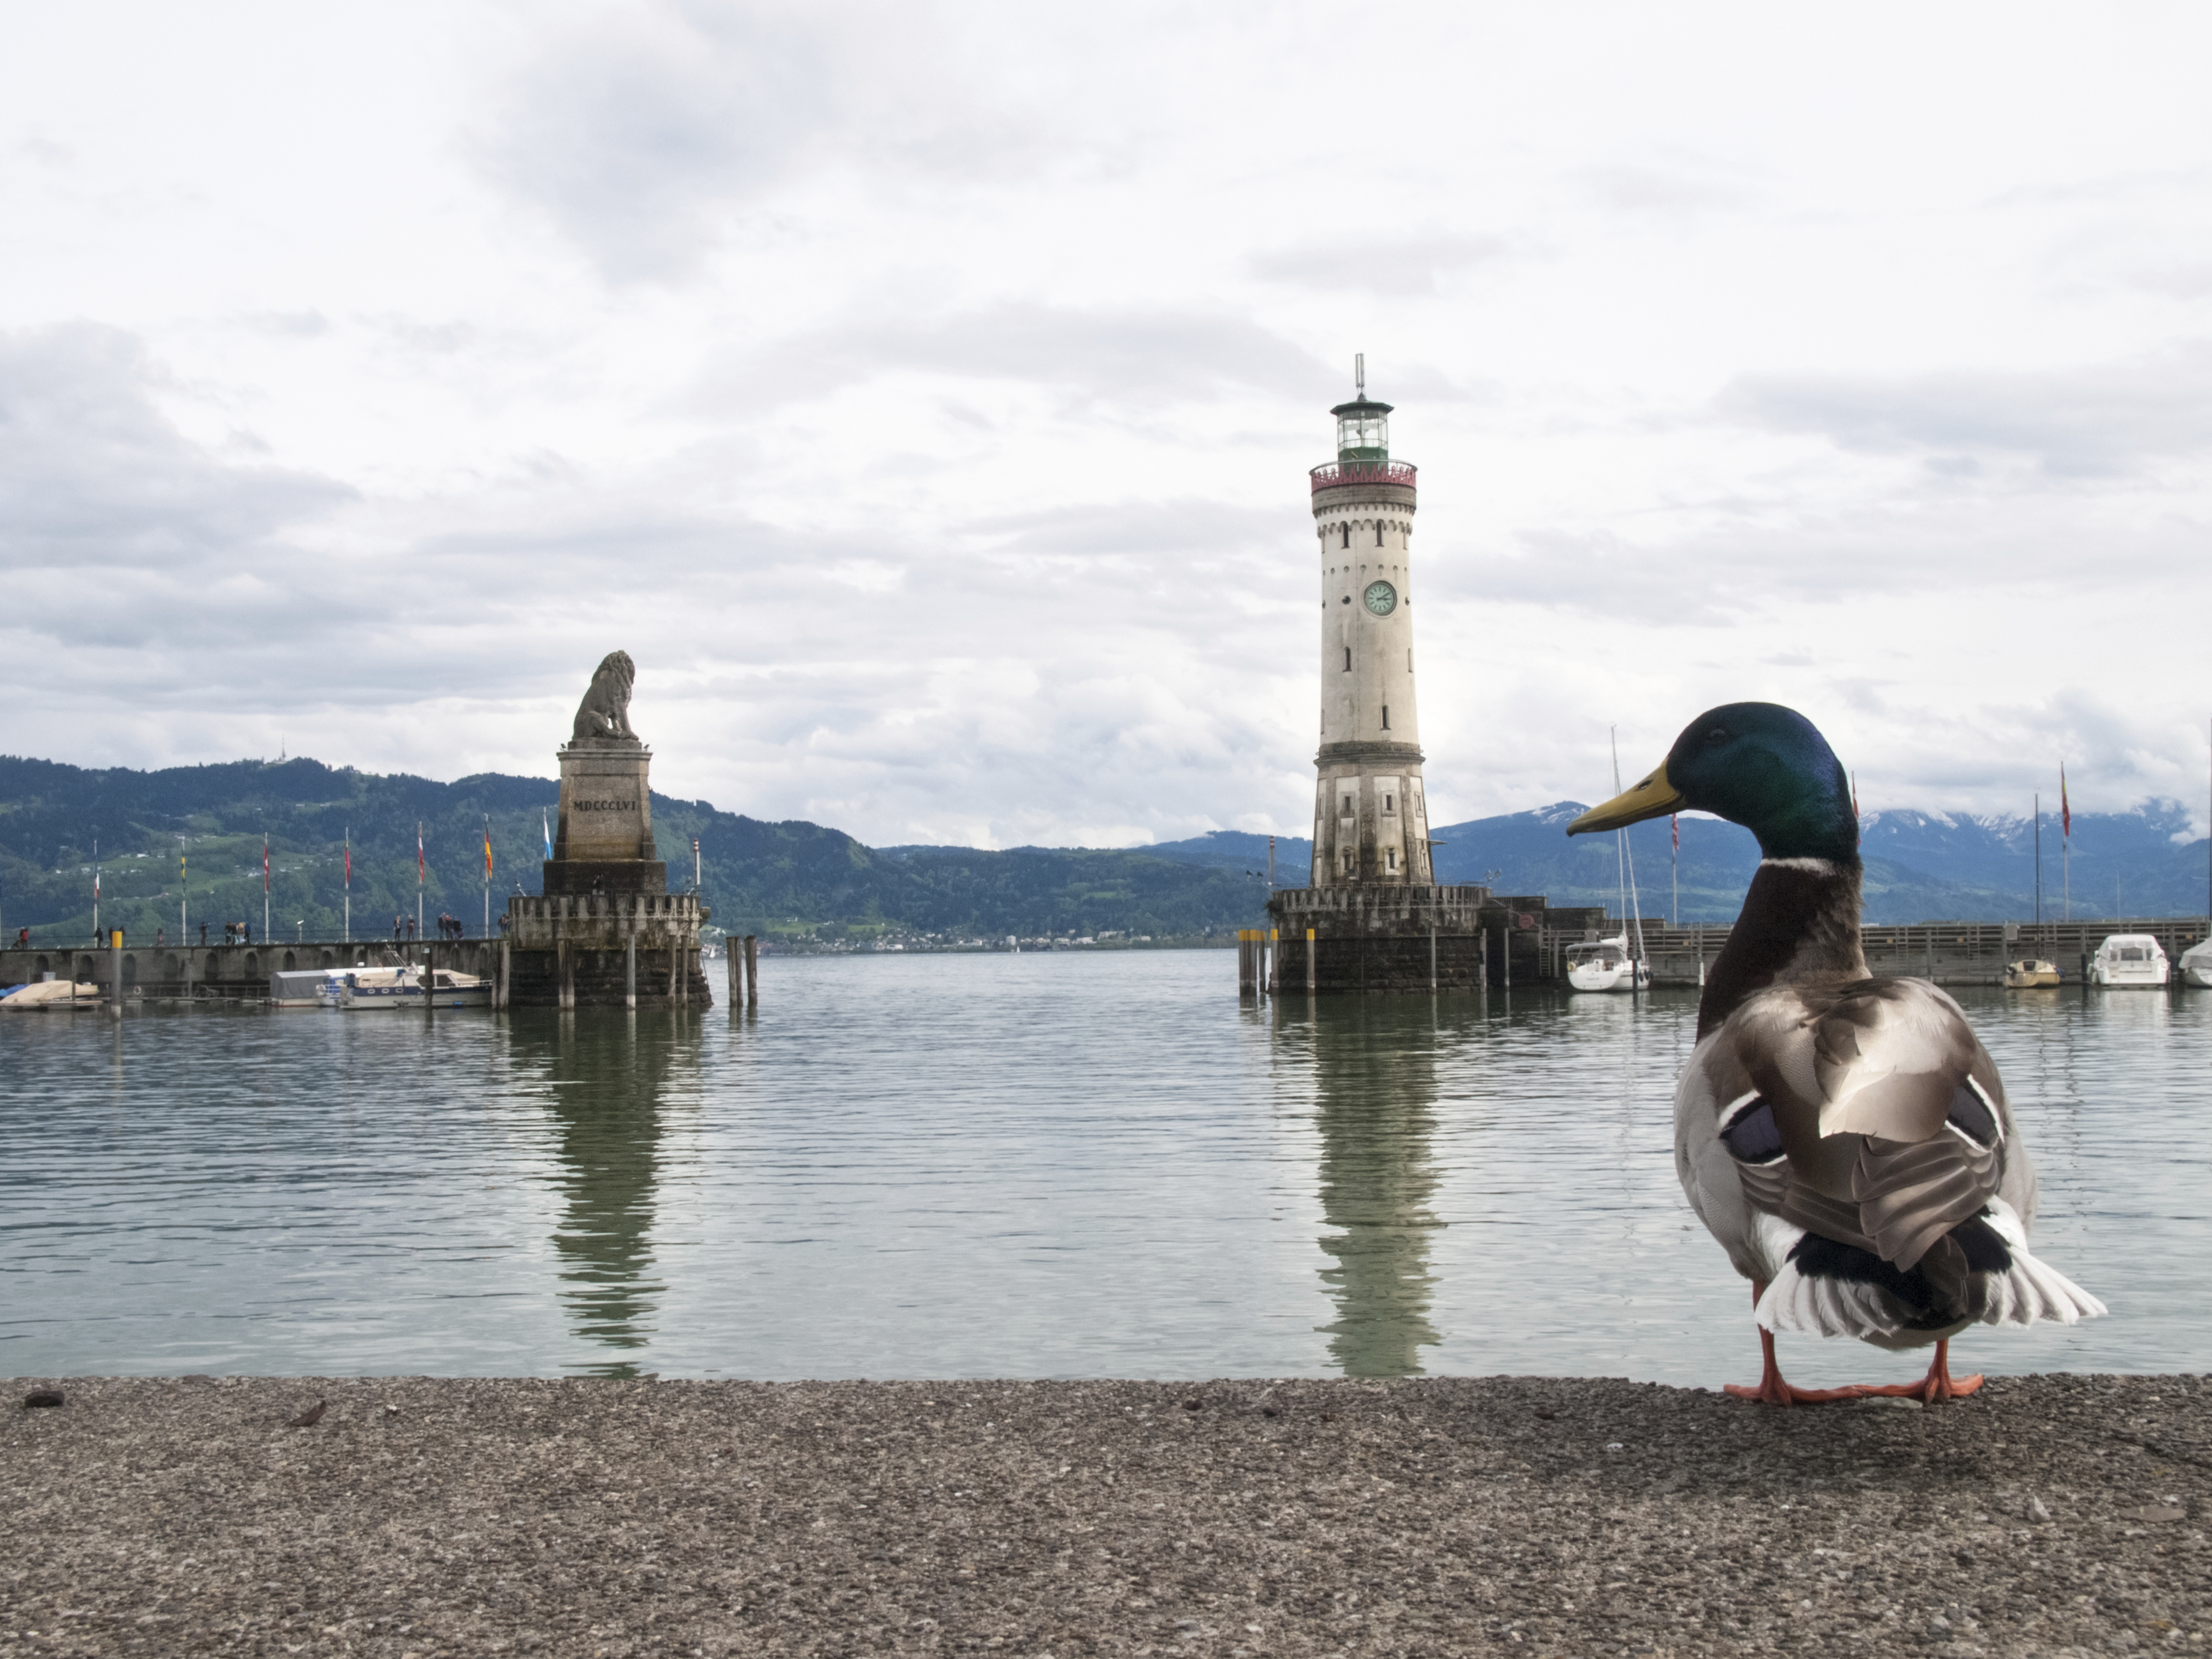 Lindau Harbor - a sight to behold, not only for our feathered friends. Photo: iStock.com/Mor65